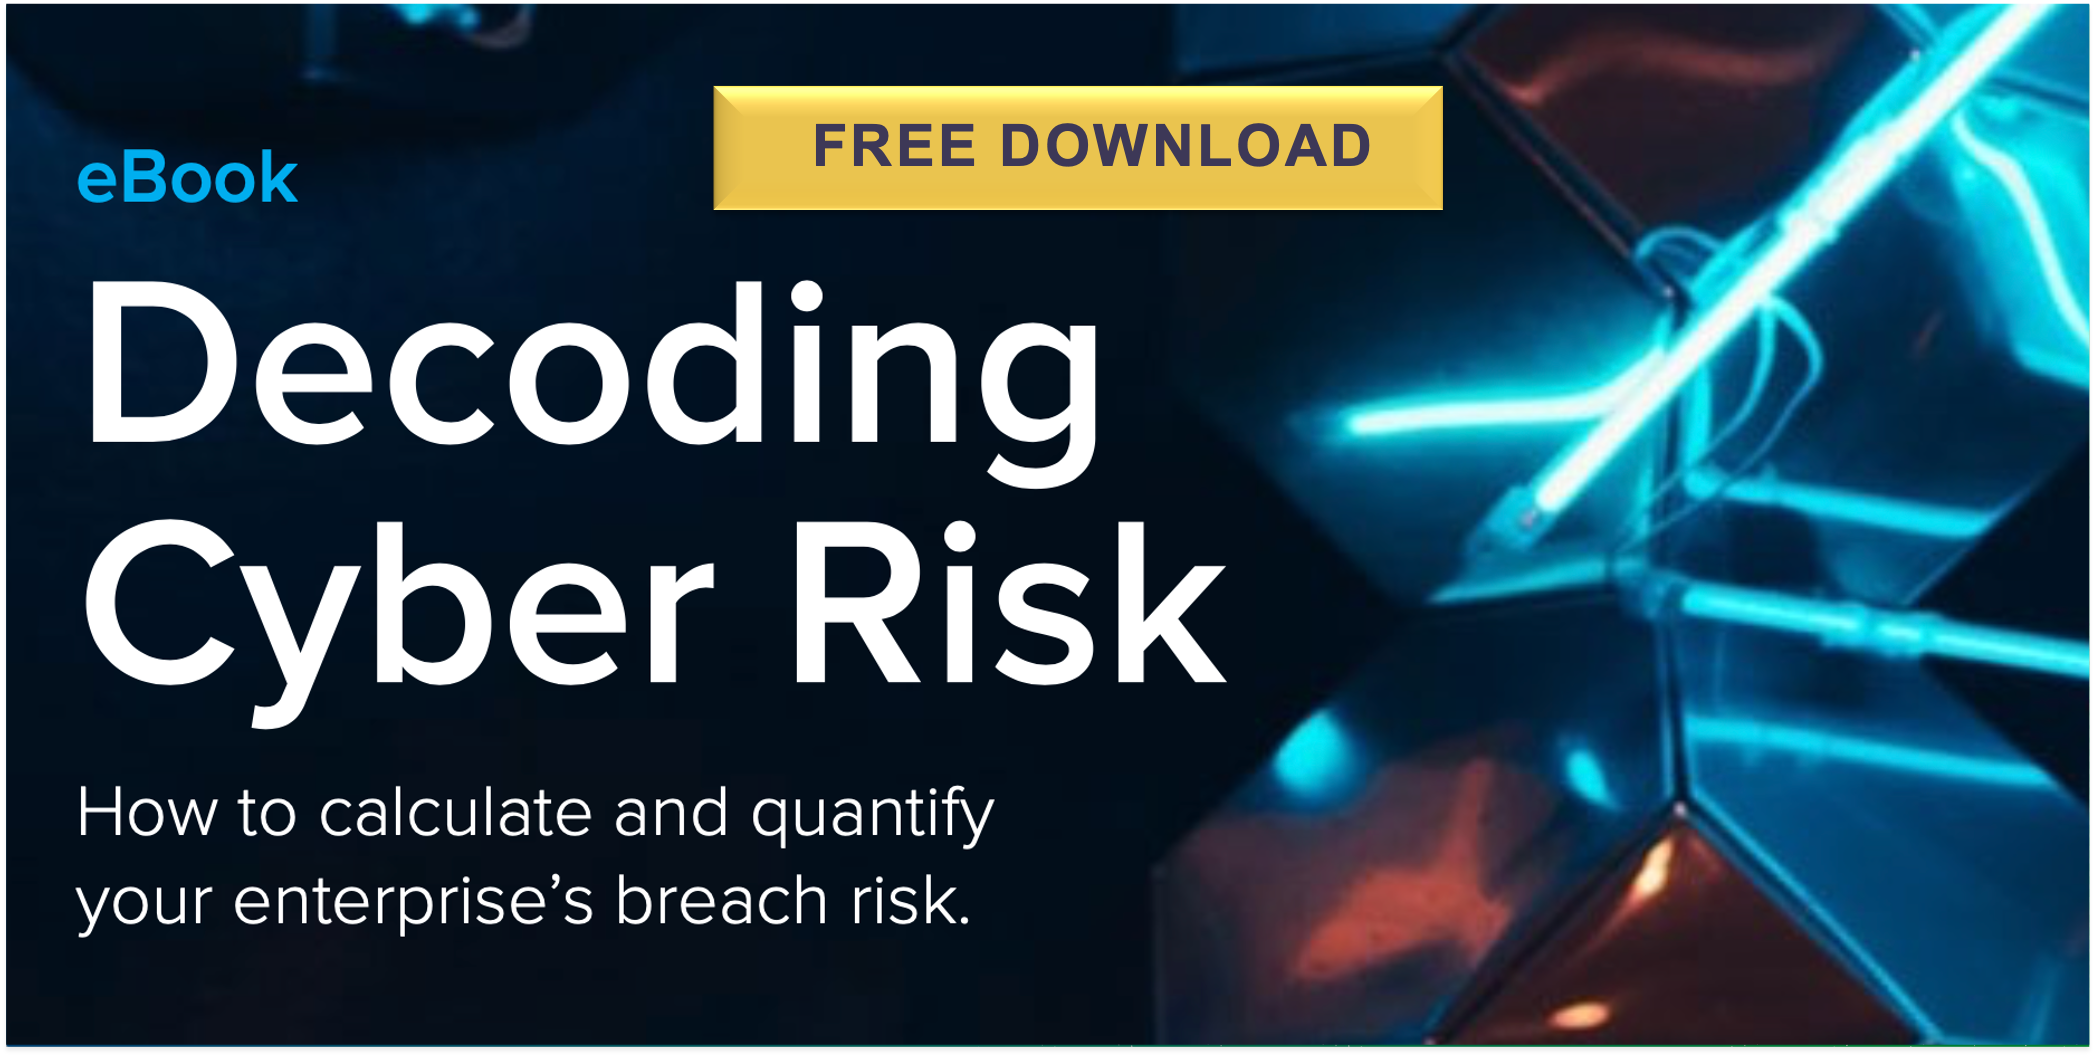 Decoding Cyber Risk